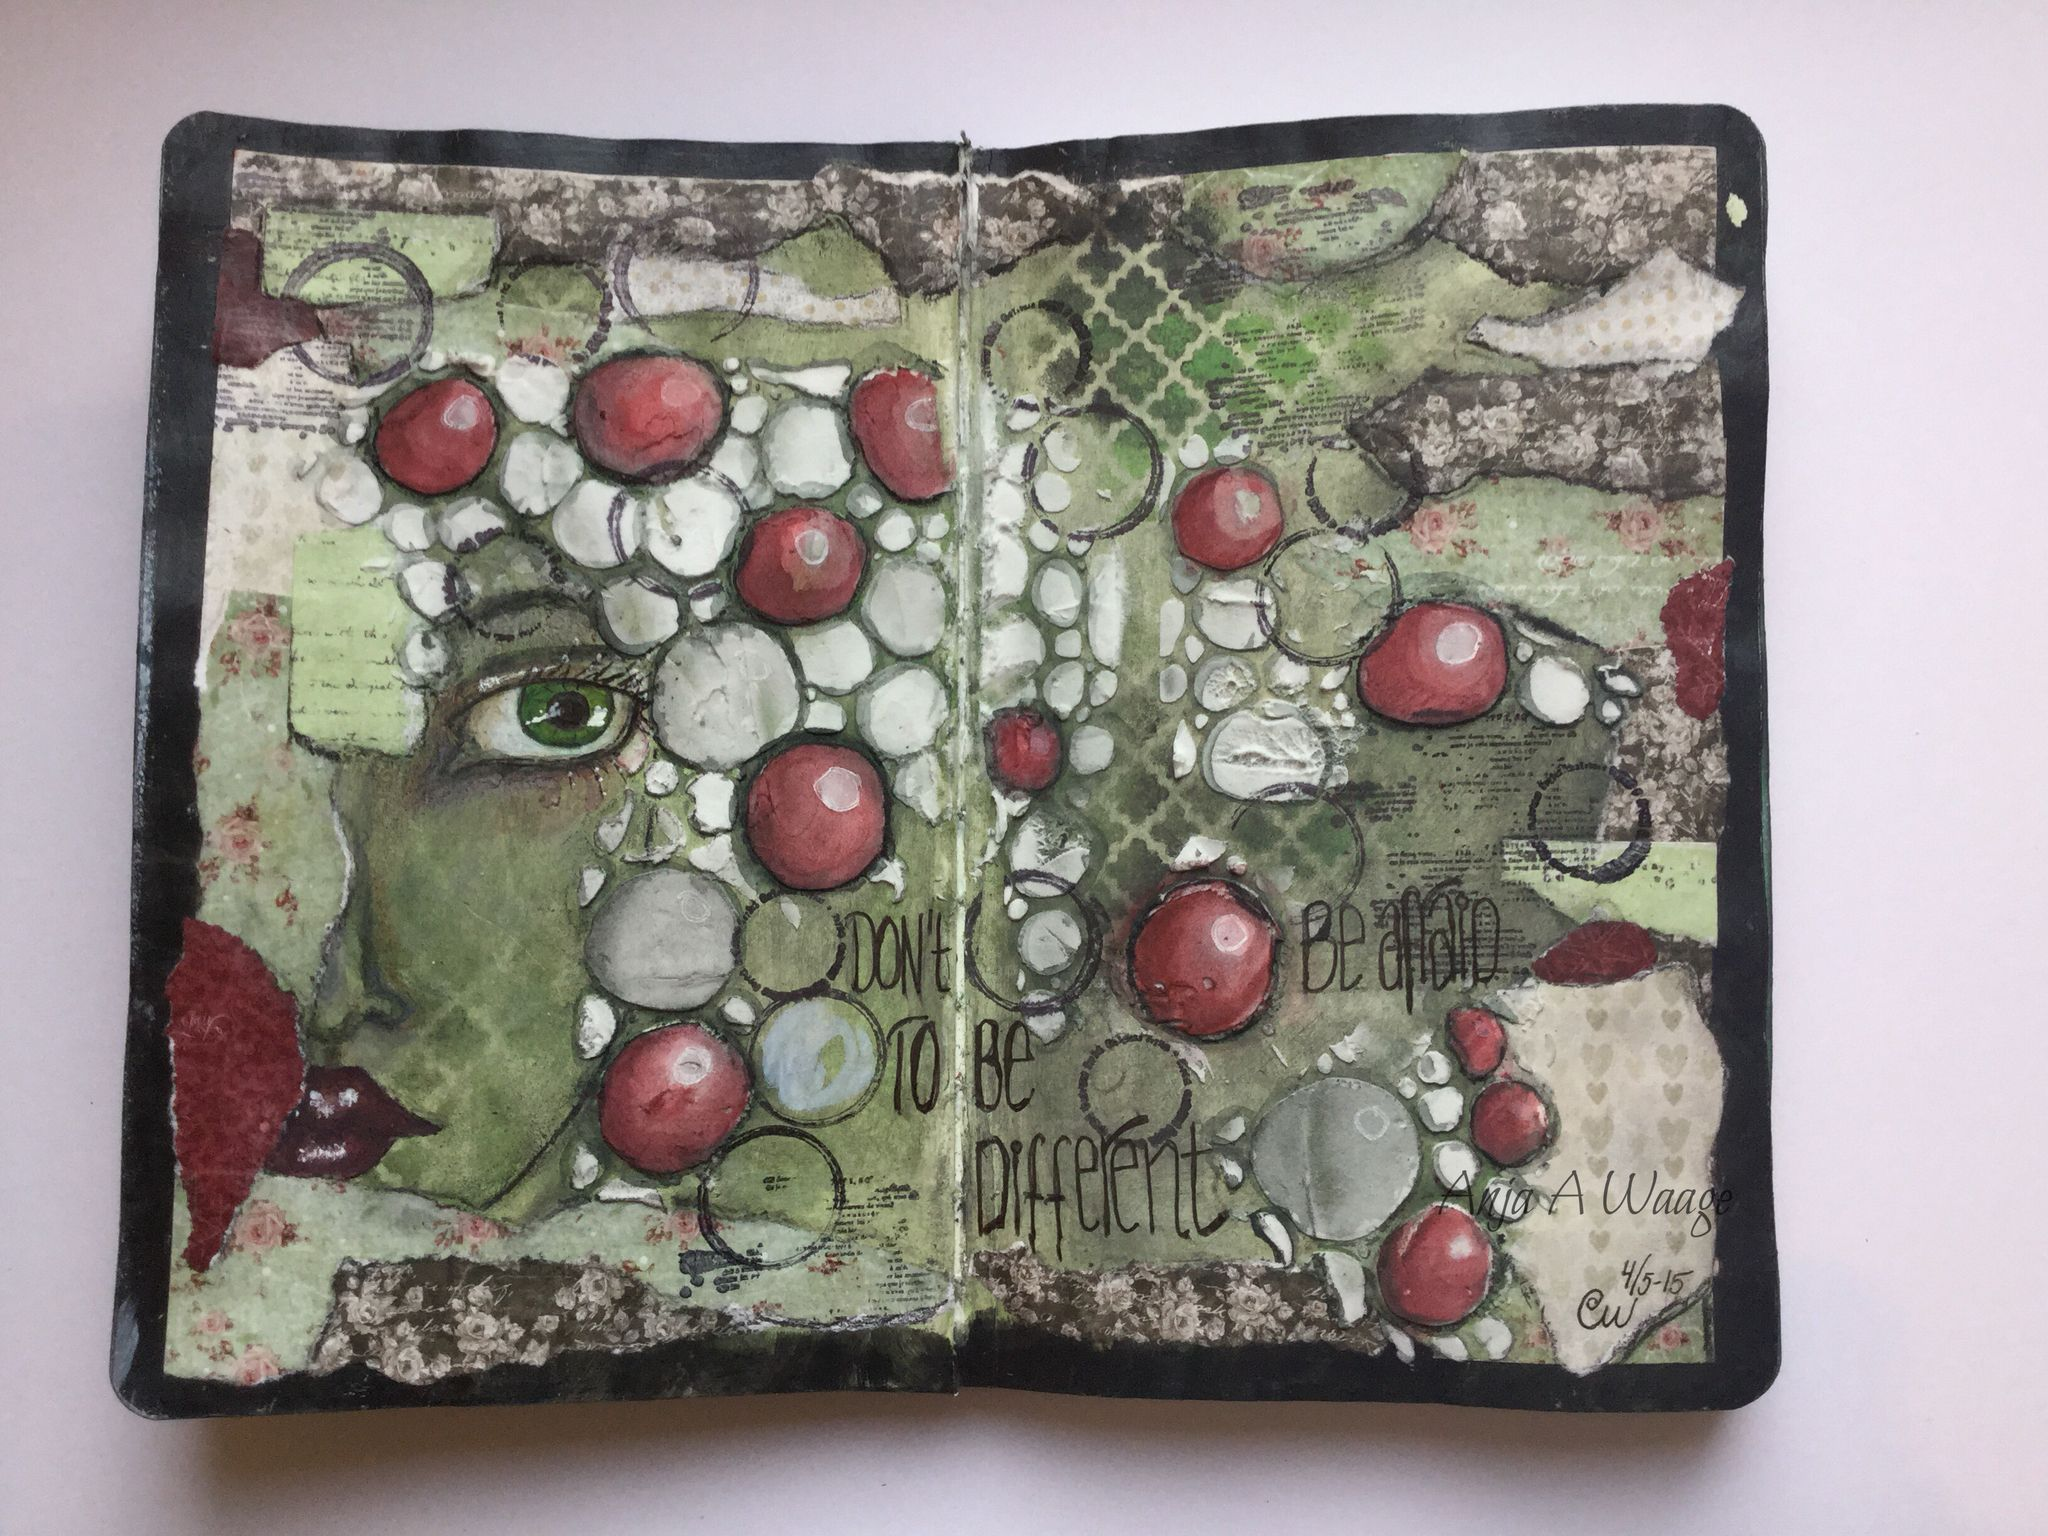 Art journal By Me...Anja A Waage